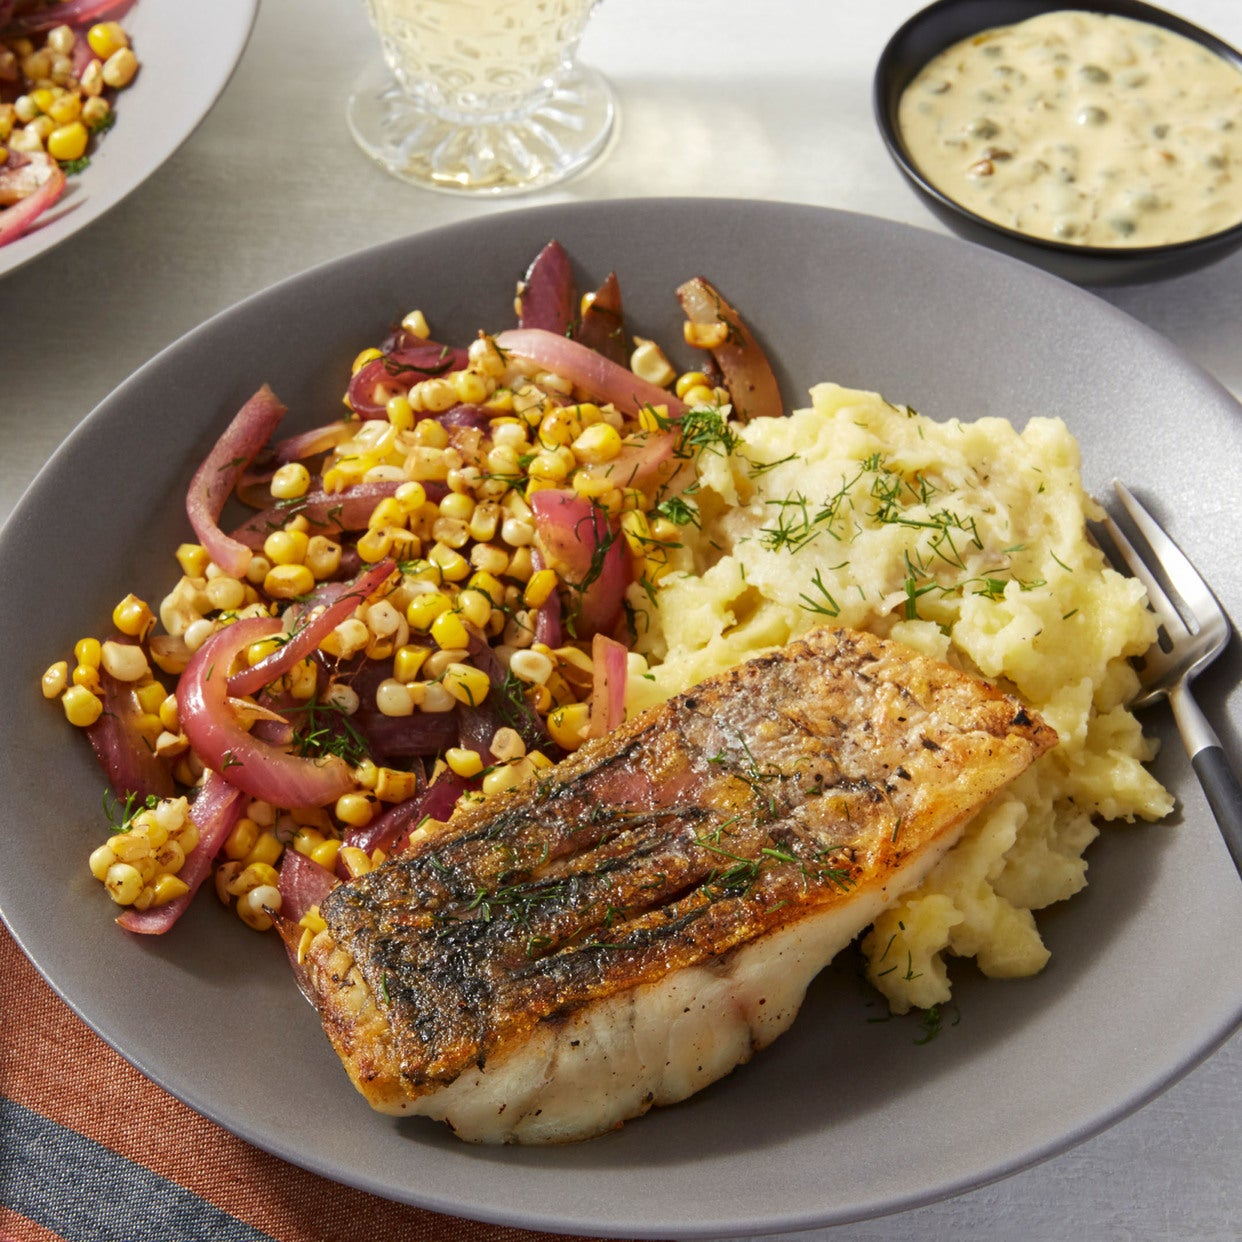 Barramundi & Garlic Mashed Potatoes with Corn & Tartar Sauce